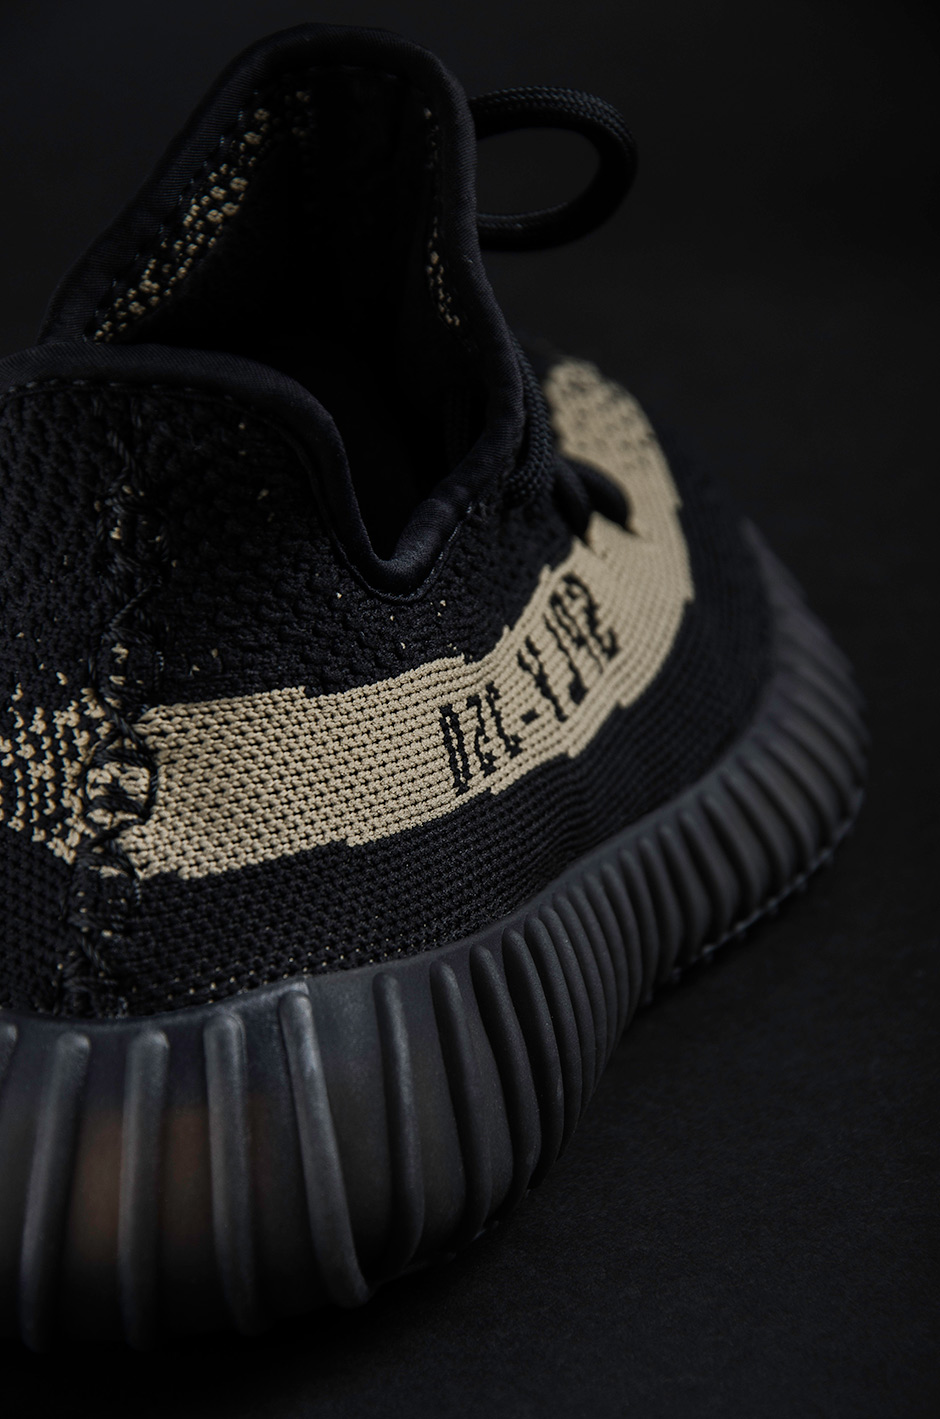 Yeezy Boost 350 Olive